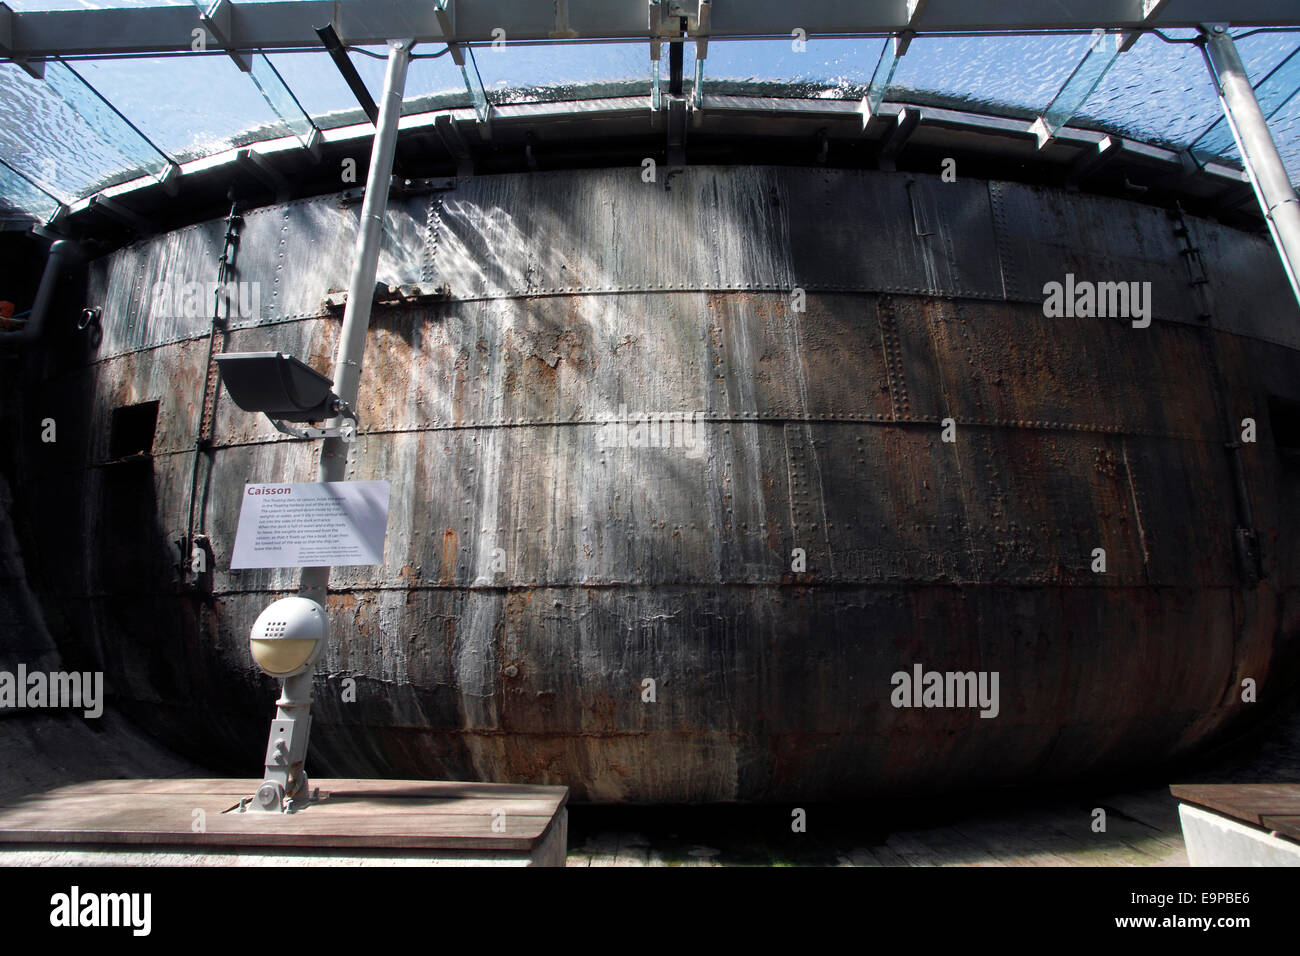 A floating dam or caisson that holds back water in a floating harbour from the dry dock.  the caisson is held down - Stock Image